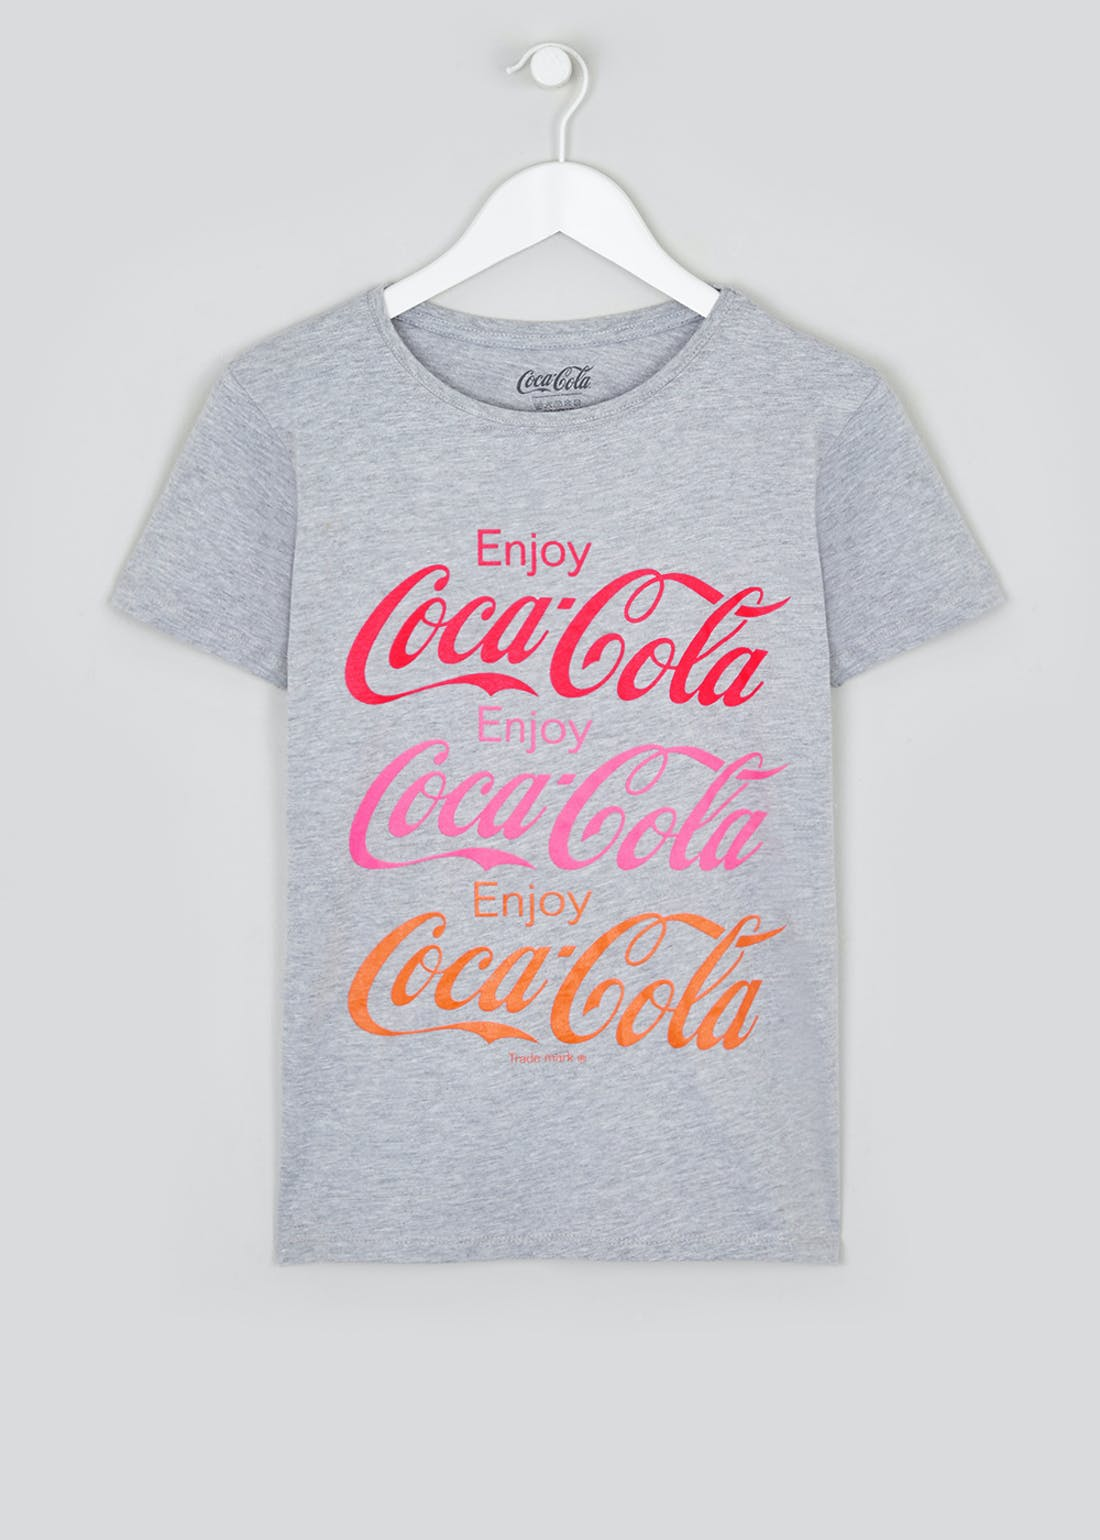 Coca Cola Slogan T-Shirt